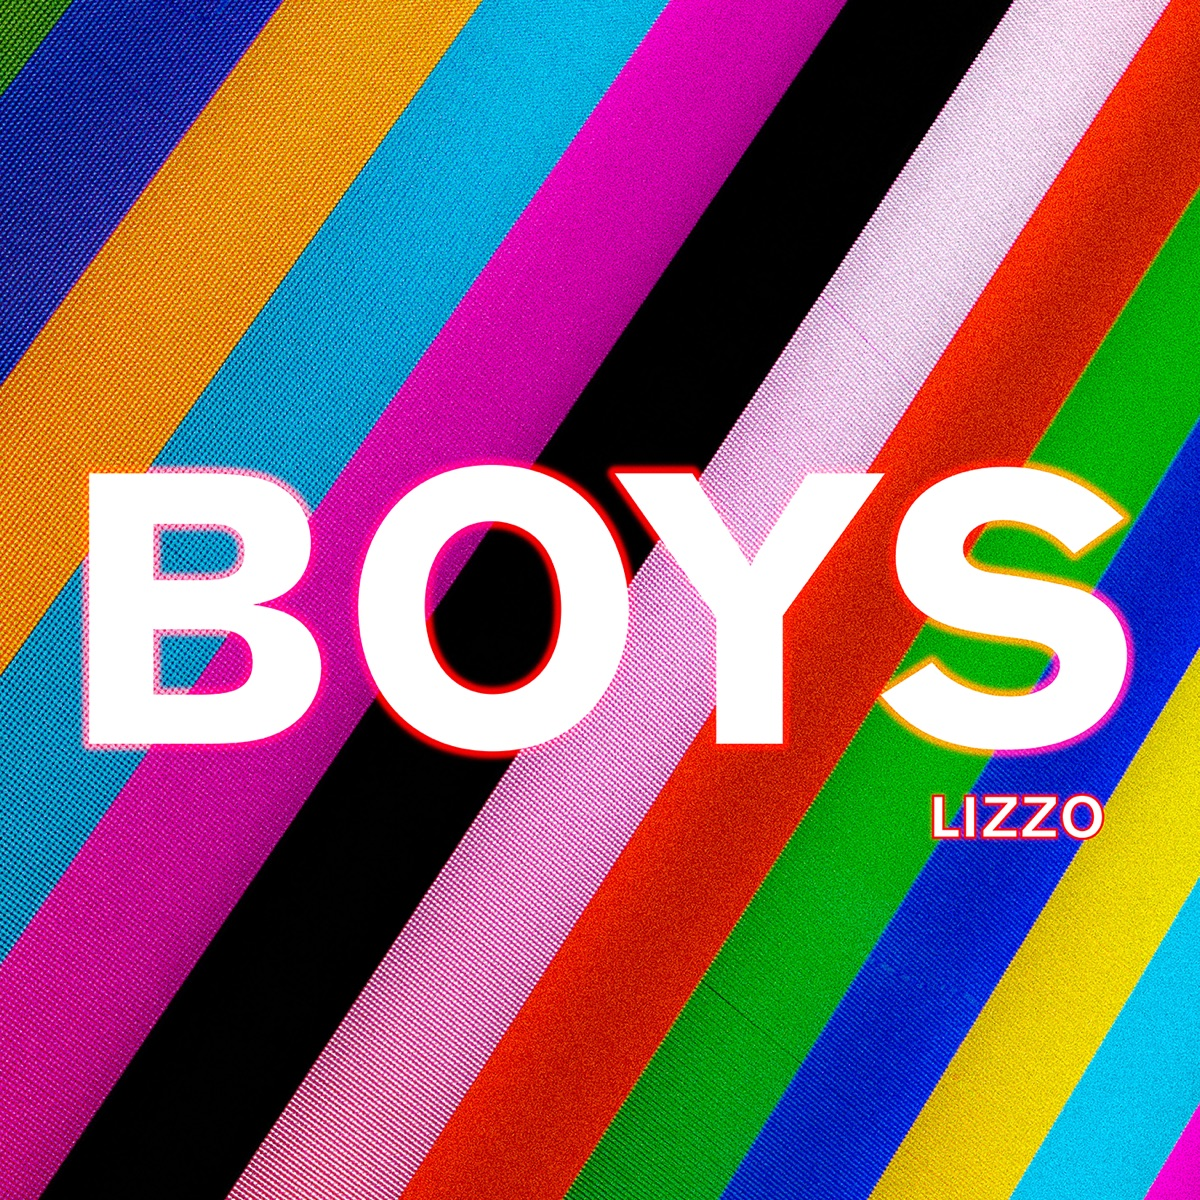 Boys Remixes - EP Lizzo CD cover